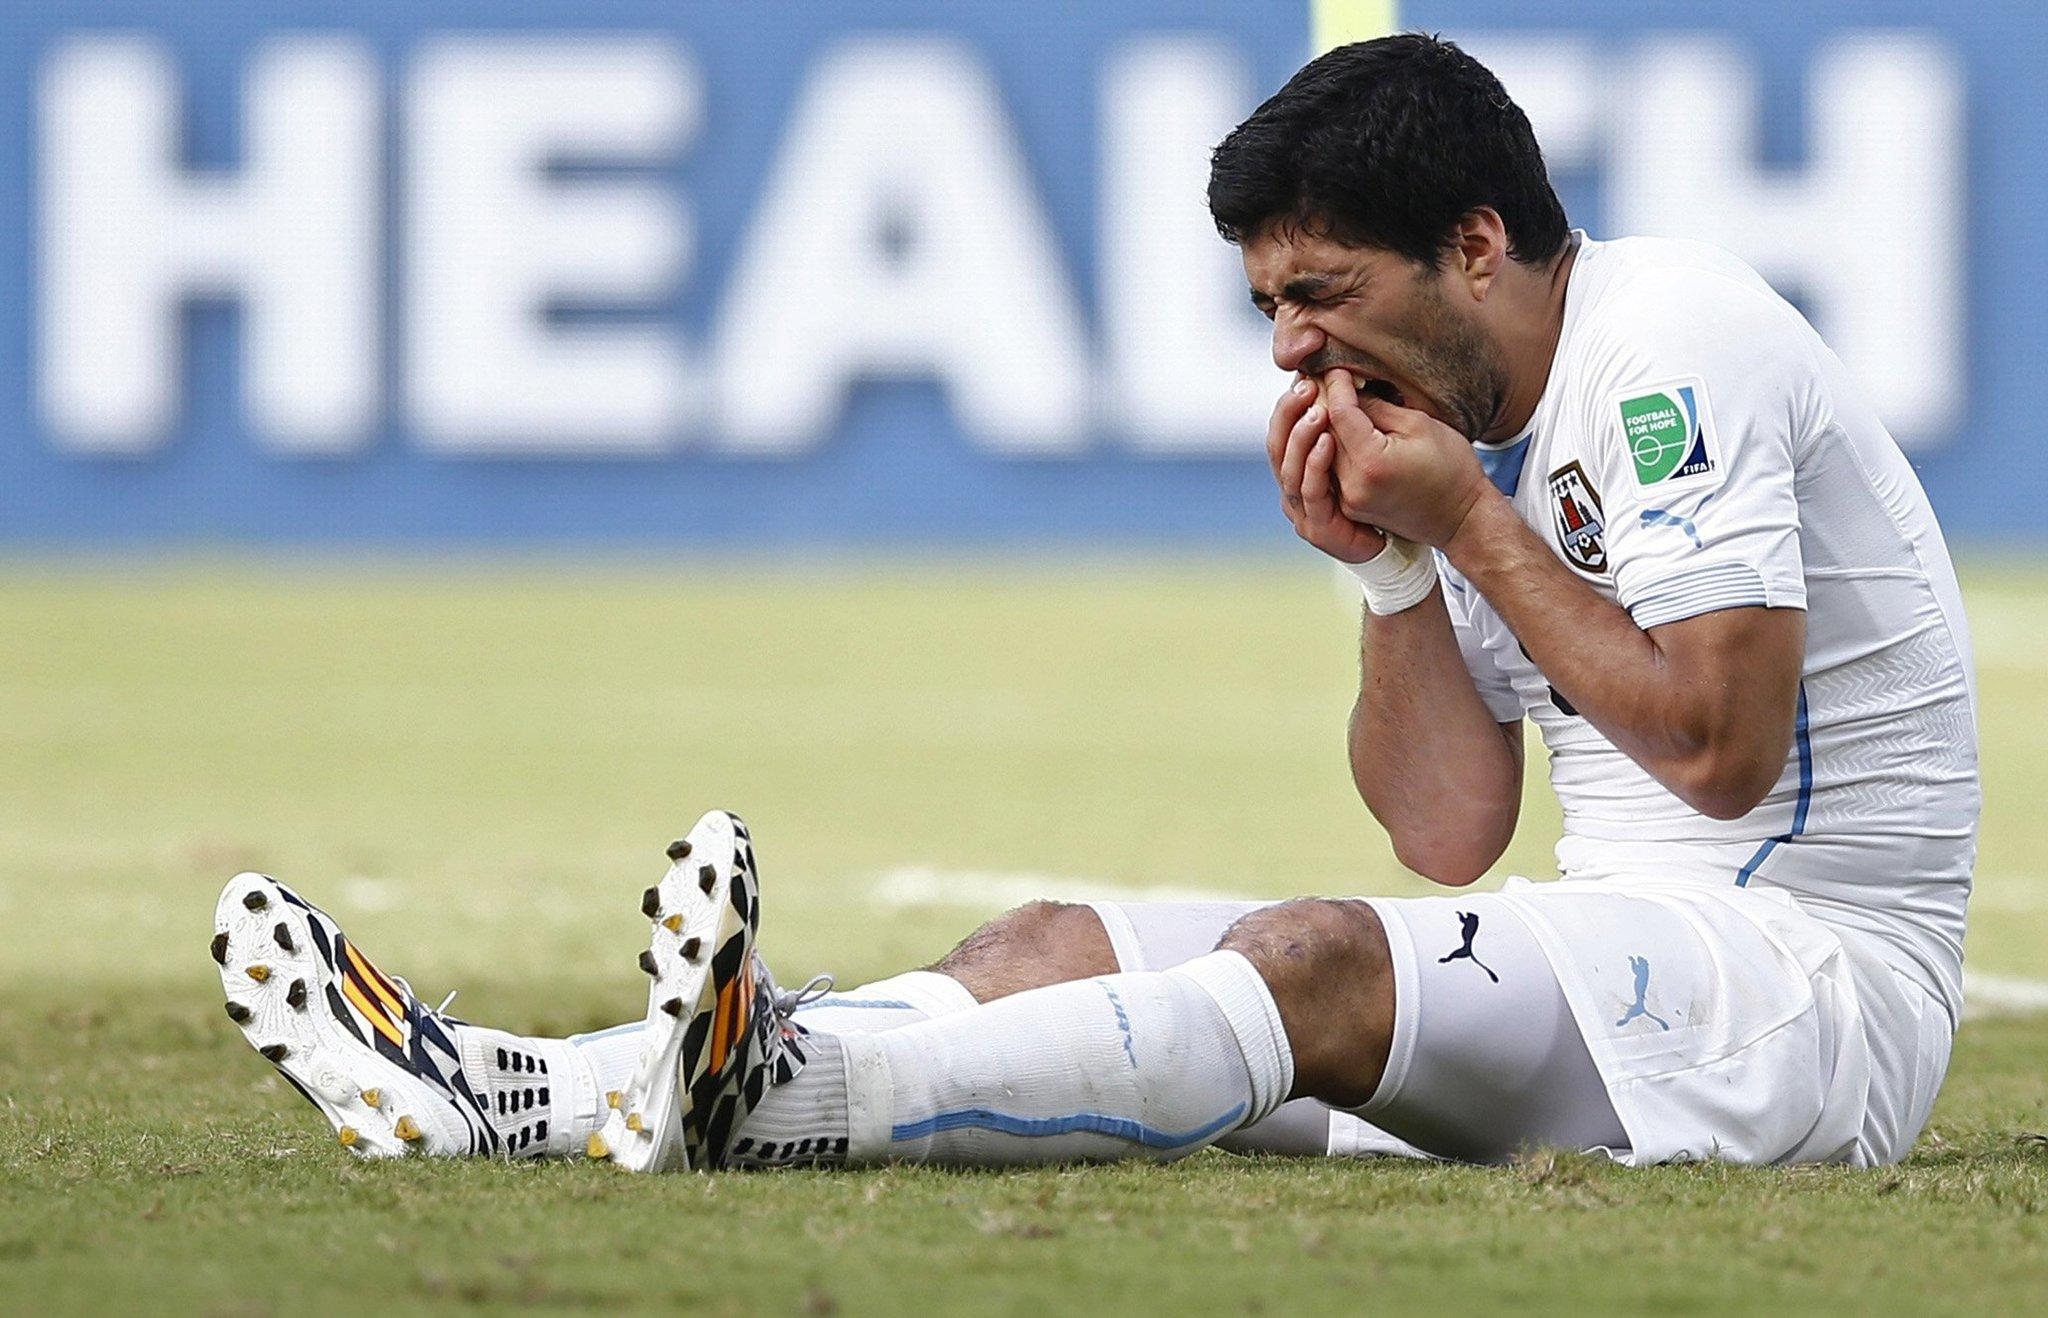 Uruguay's Luis Suarez holds his teeth after appearing to bite Italy's Giorgio Chiellini during FIFA World Cup in Natal, Brazil, on June 24, 2014.